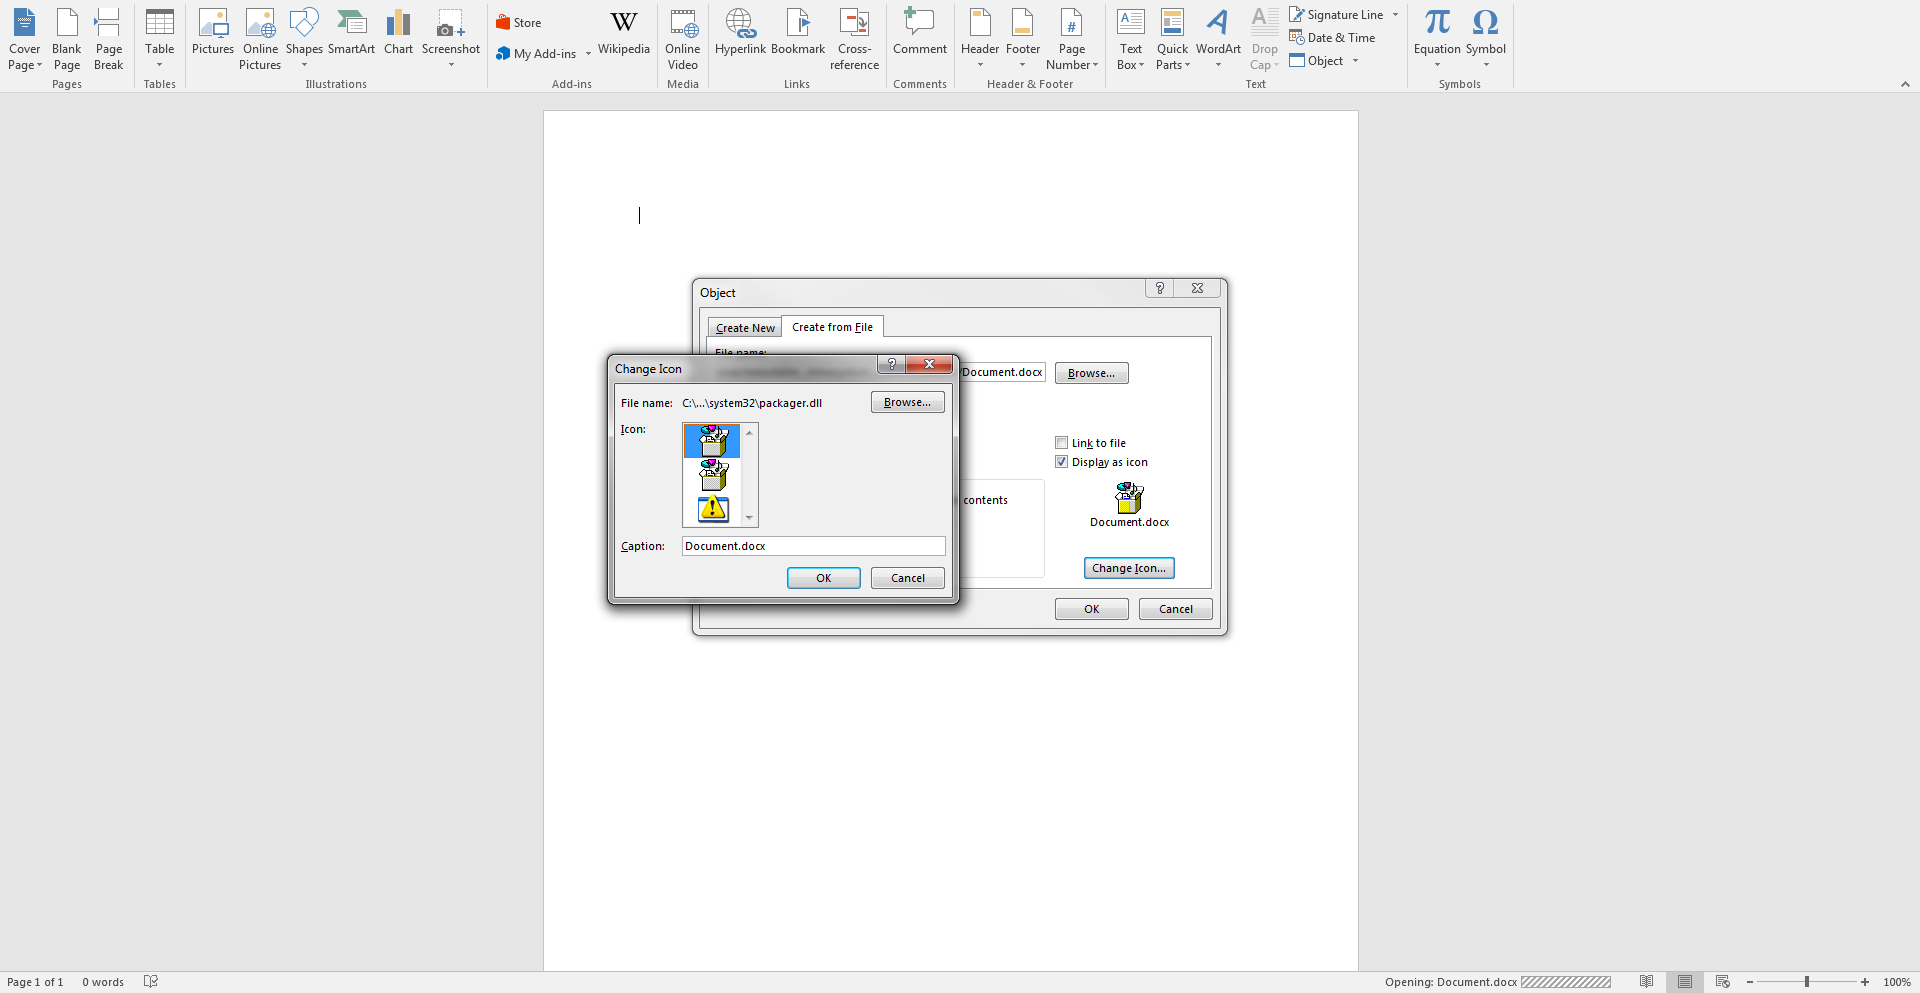 Word 2016 (Office 365 ProPlus) insert object icon problems